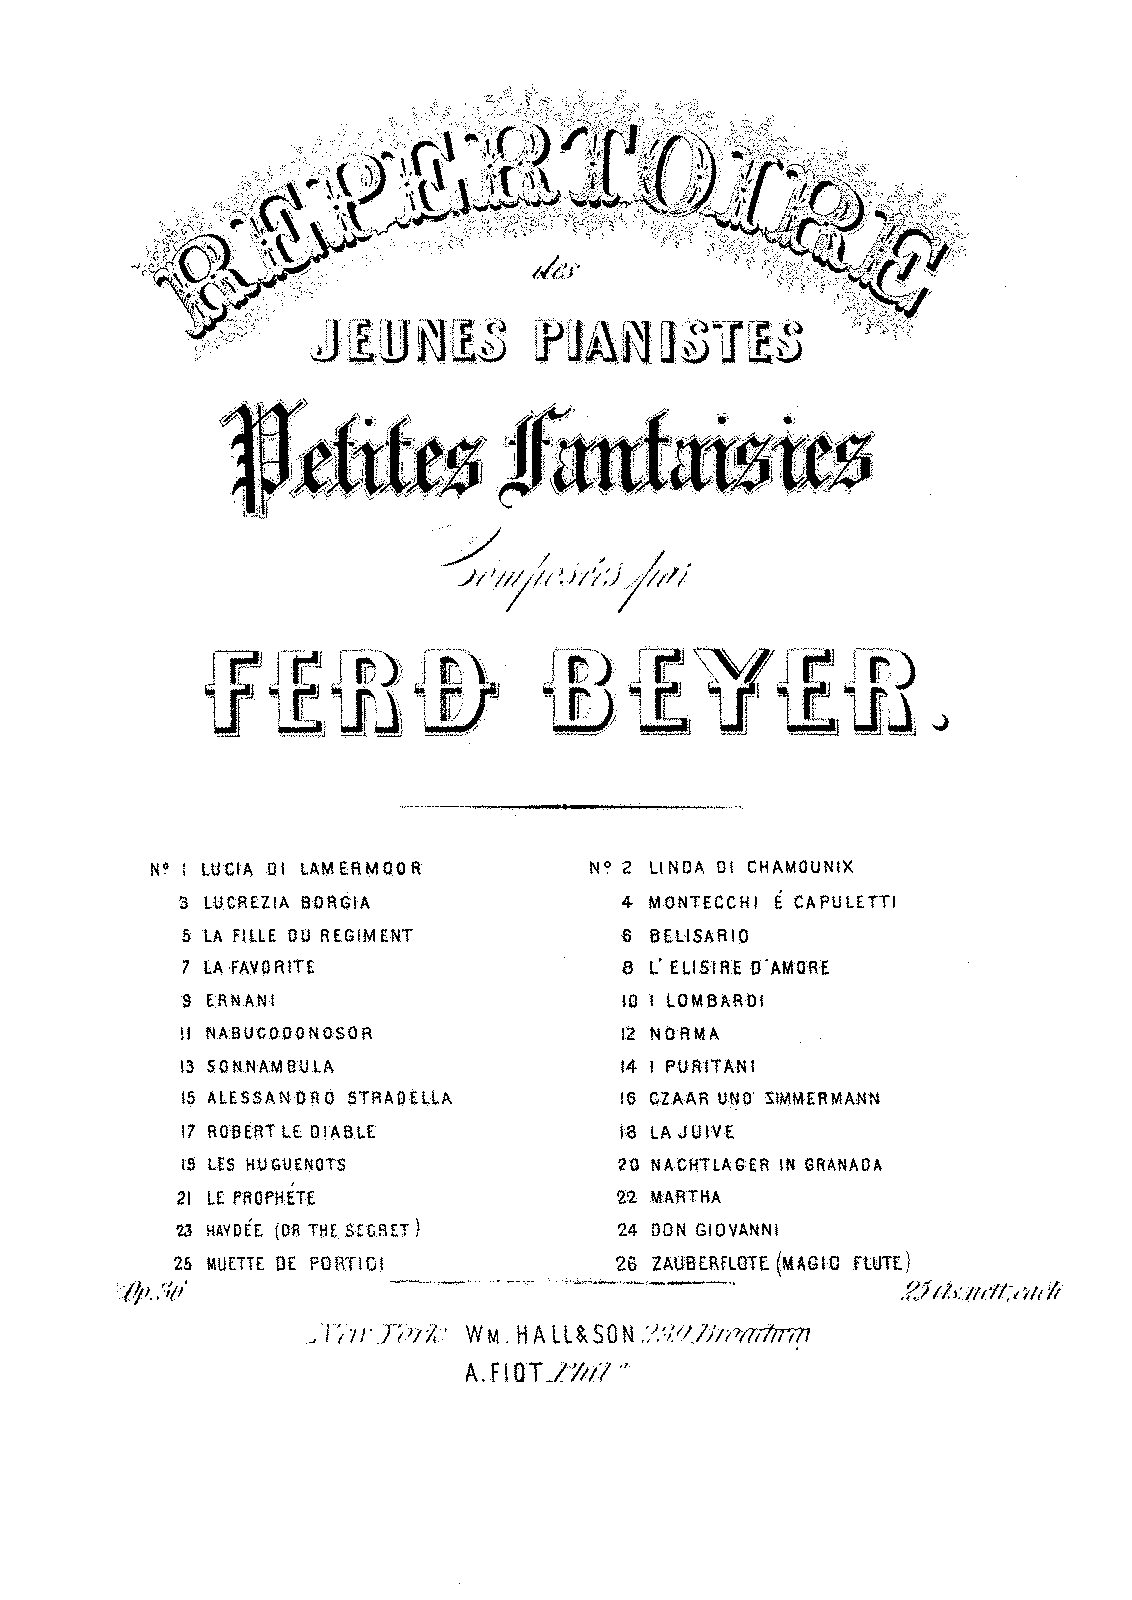 PMLP226993-Beyer - 36-22 Repertoire des jeunes Pianistes op 36 no 22 Haydée, or the Secret - Hall & Son.pdf